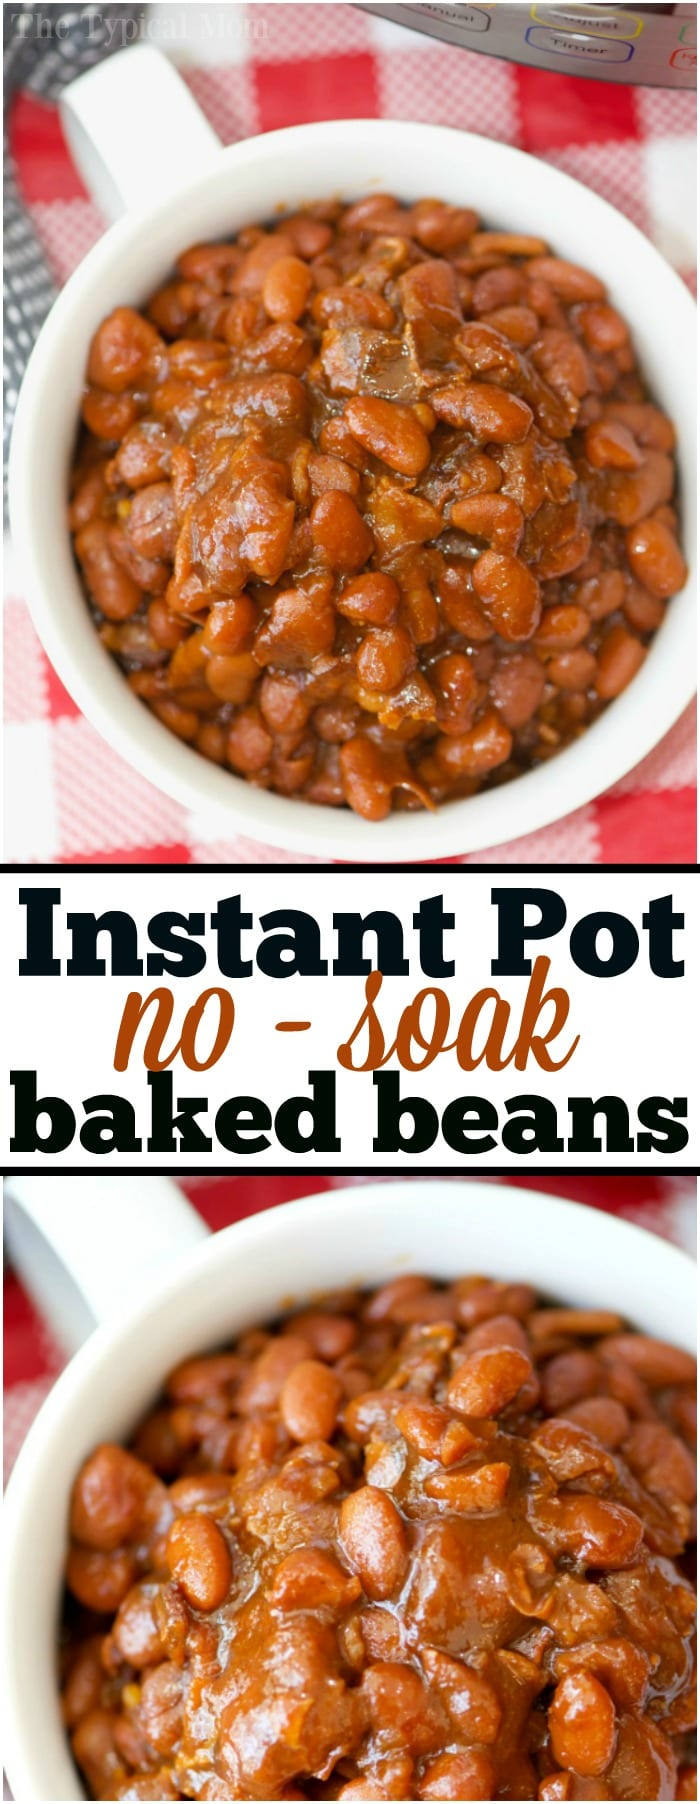 These are some of the most amazing no soak Instant Pot baked beans you'll ever eat! Perfectly cooked in your pressure cooker with no pre soaking required. They're a great sweet and savory side dish for any barbecue and you can add a bit of heat to them too if you want. #instantpot #bakedbeans #baked #beans #nosoak #no #soak #soaking #best #easy #recipe #homemade #bacon